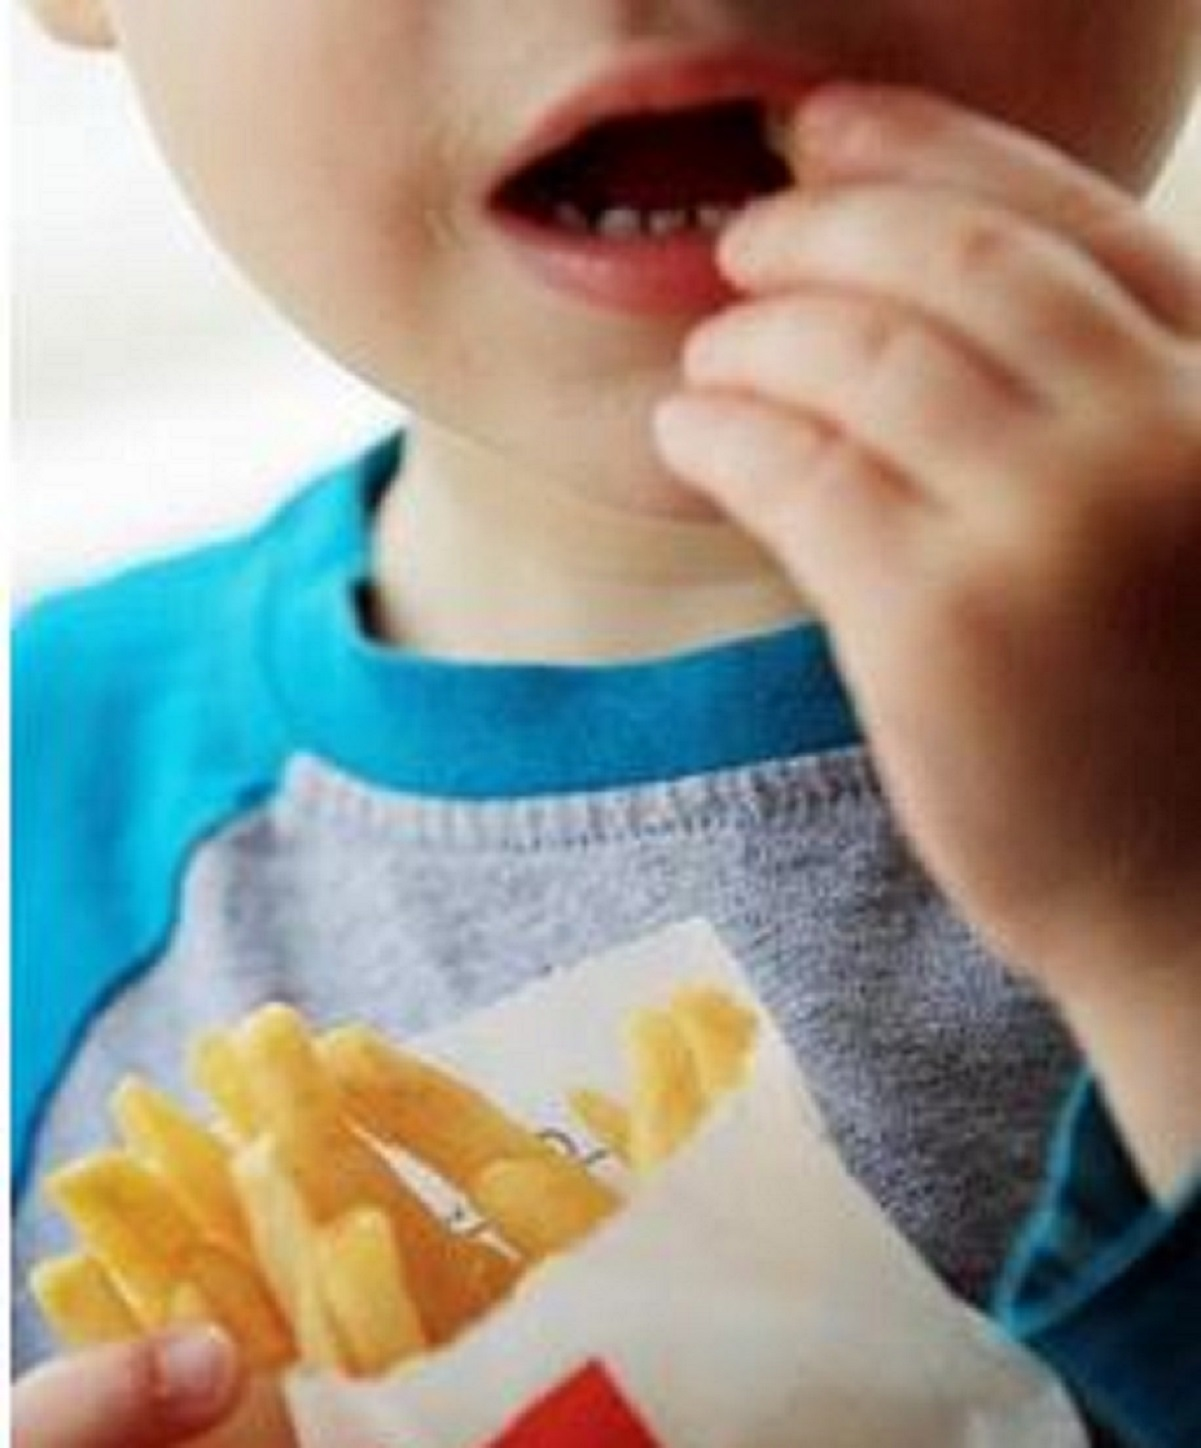 Almost one in five children starting school in Watford is obese - but children in St Albans are much healthier